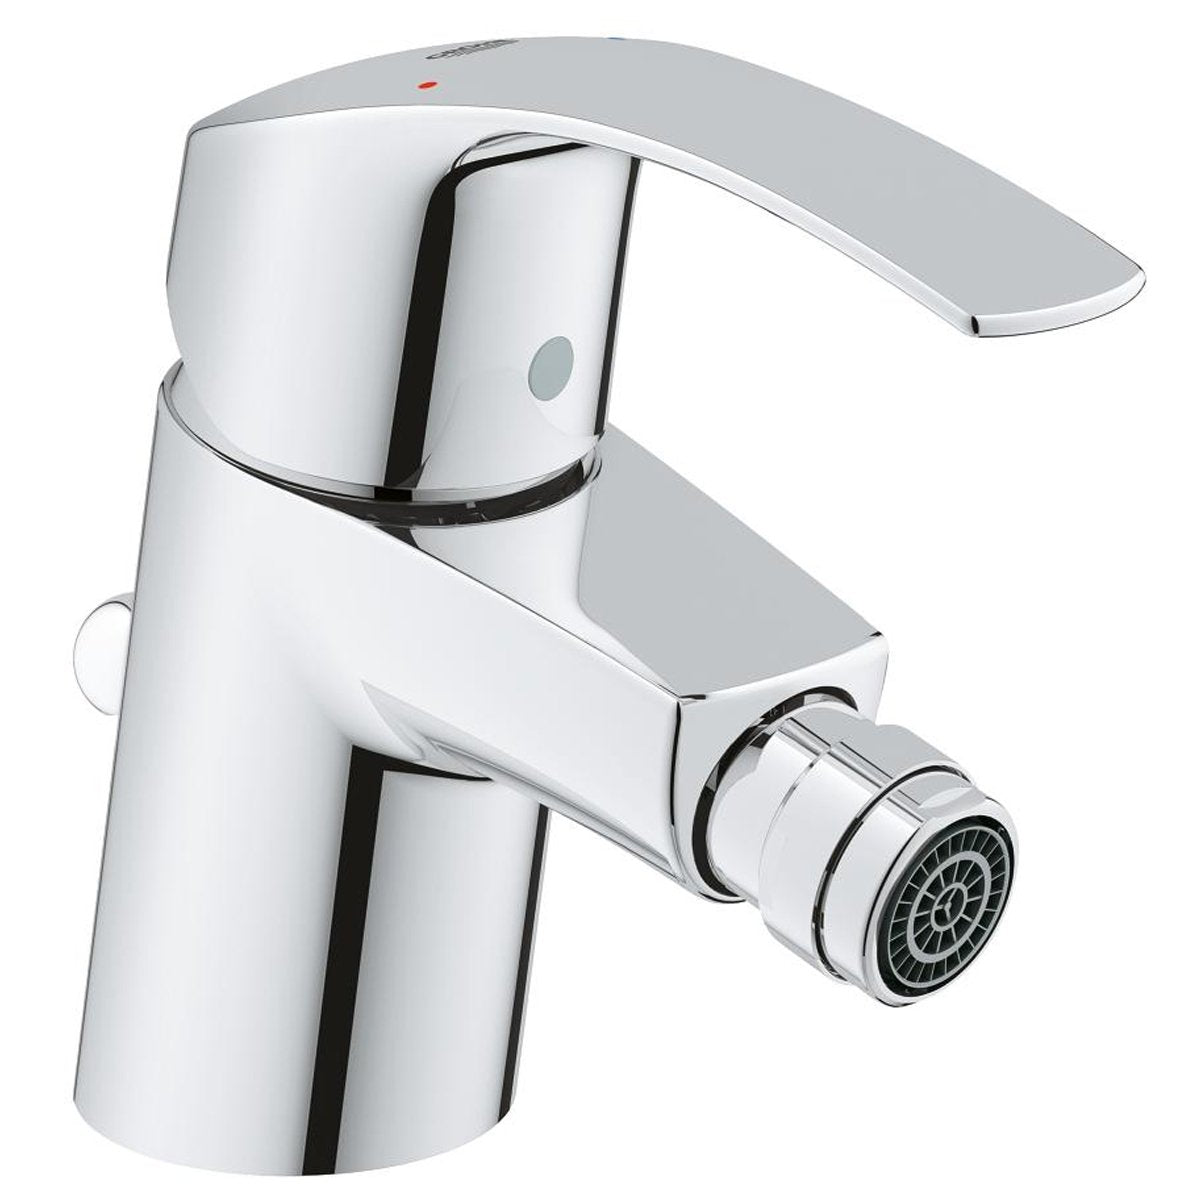 Grohe Eurosmart S-Size 1/2 inch Bidet Mixer Tap with Pop-up Waste - Chrome